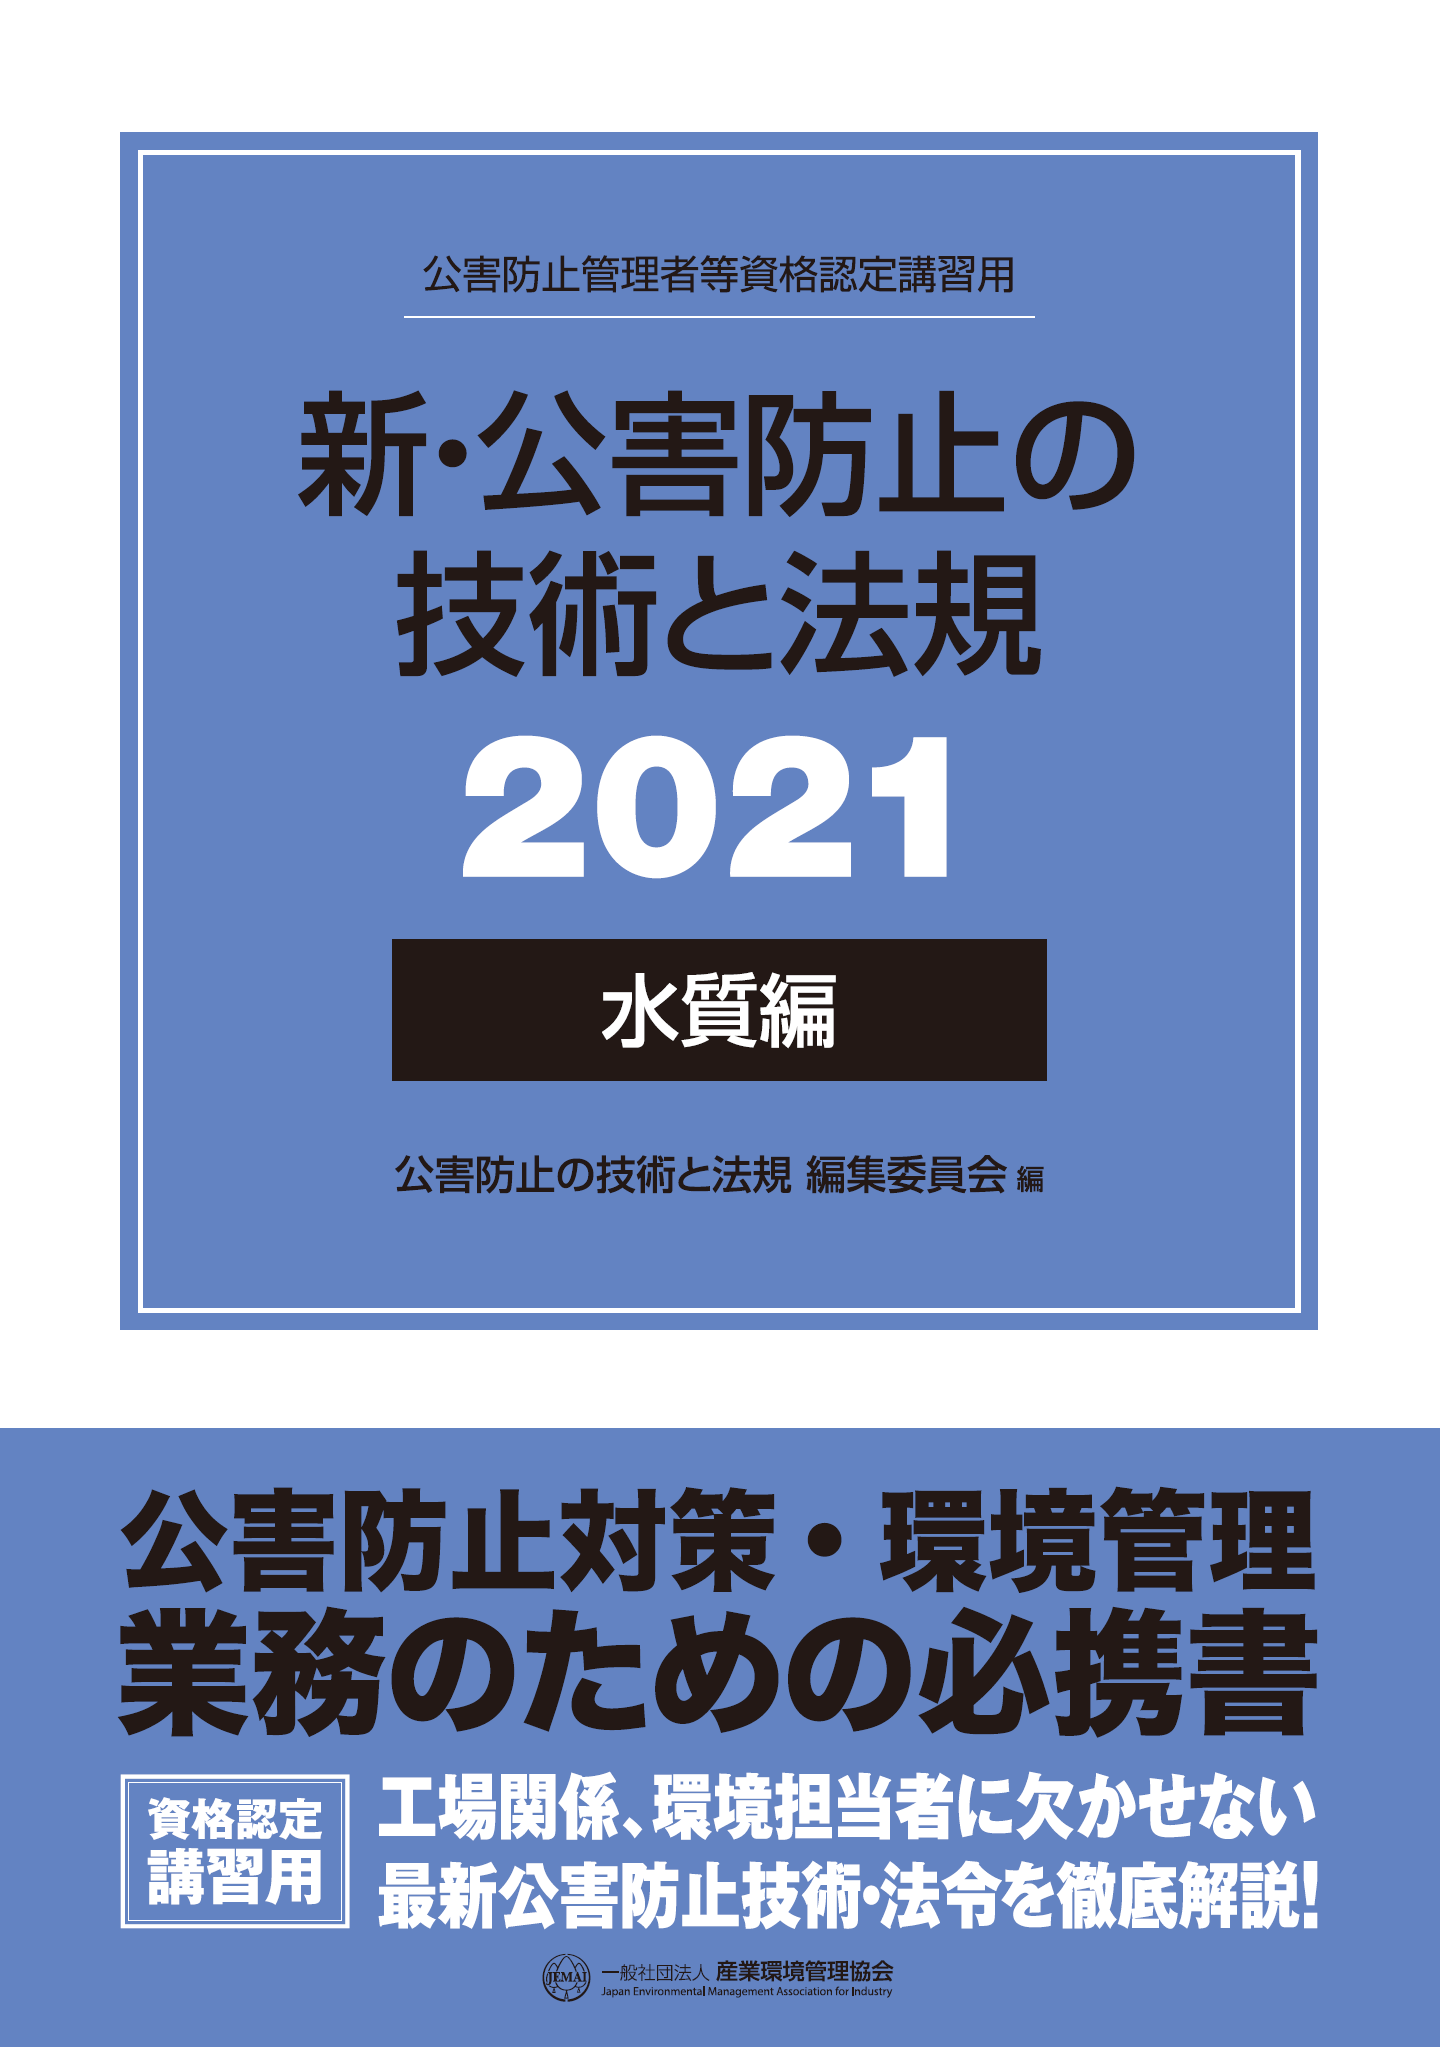 02_water2021.png